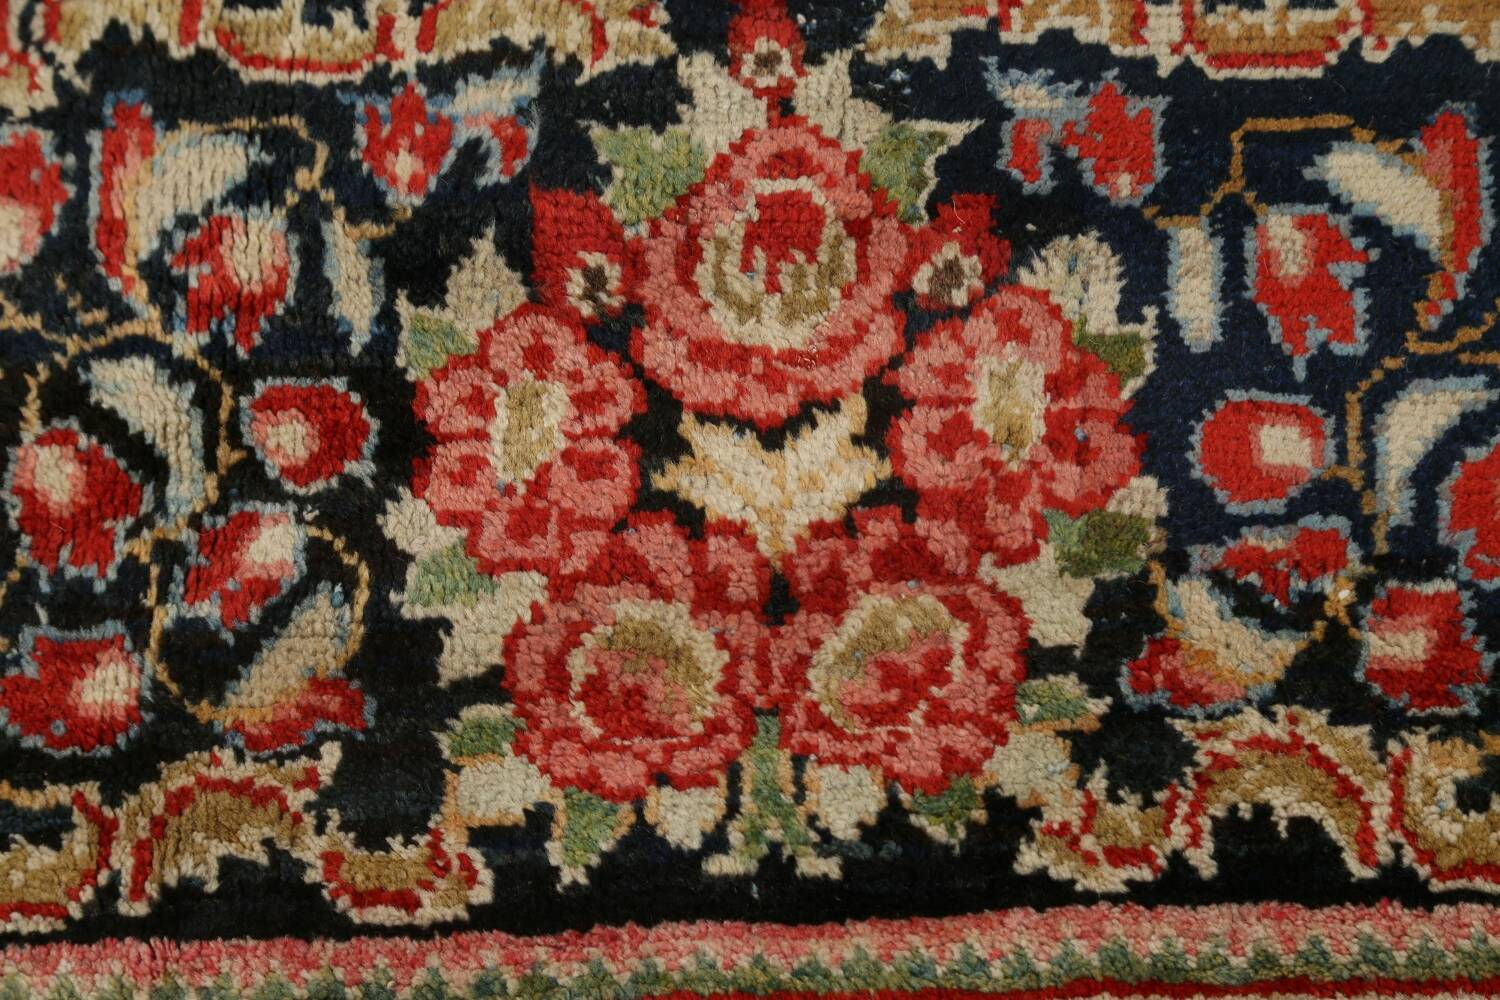 Antique Vegetable Dye Sultanabad Persian Area Rug 10x14 image 9